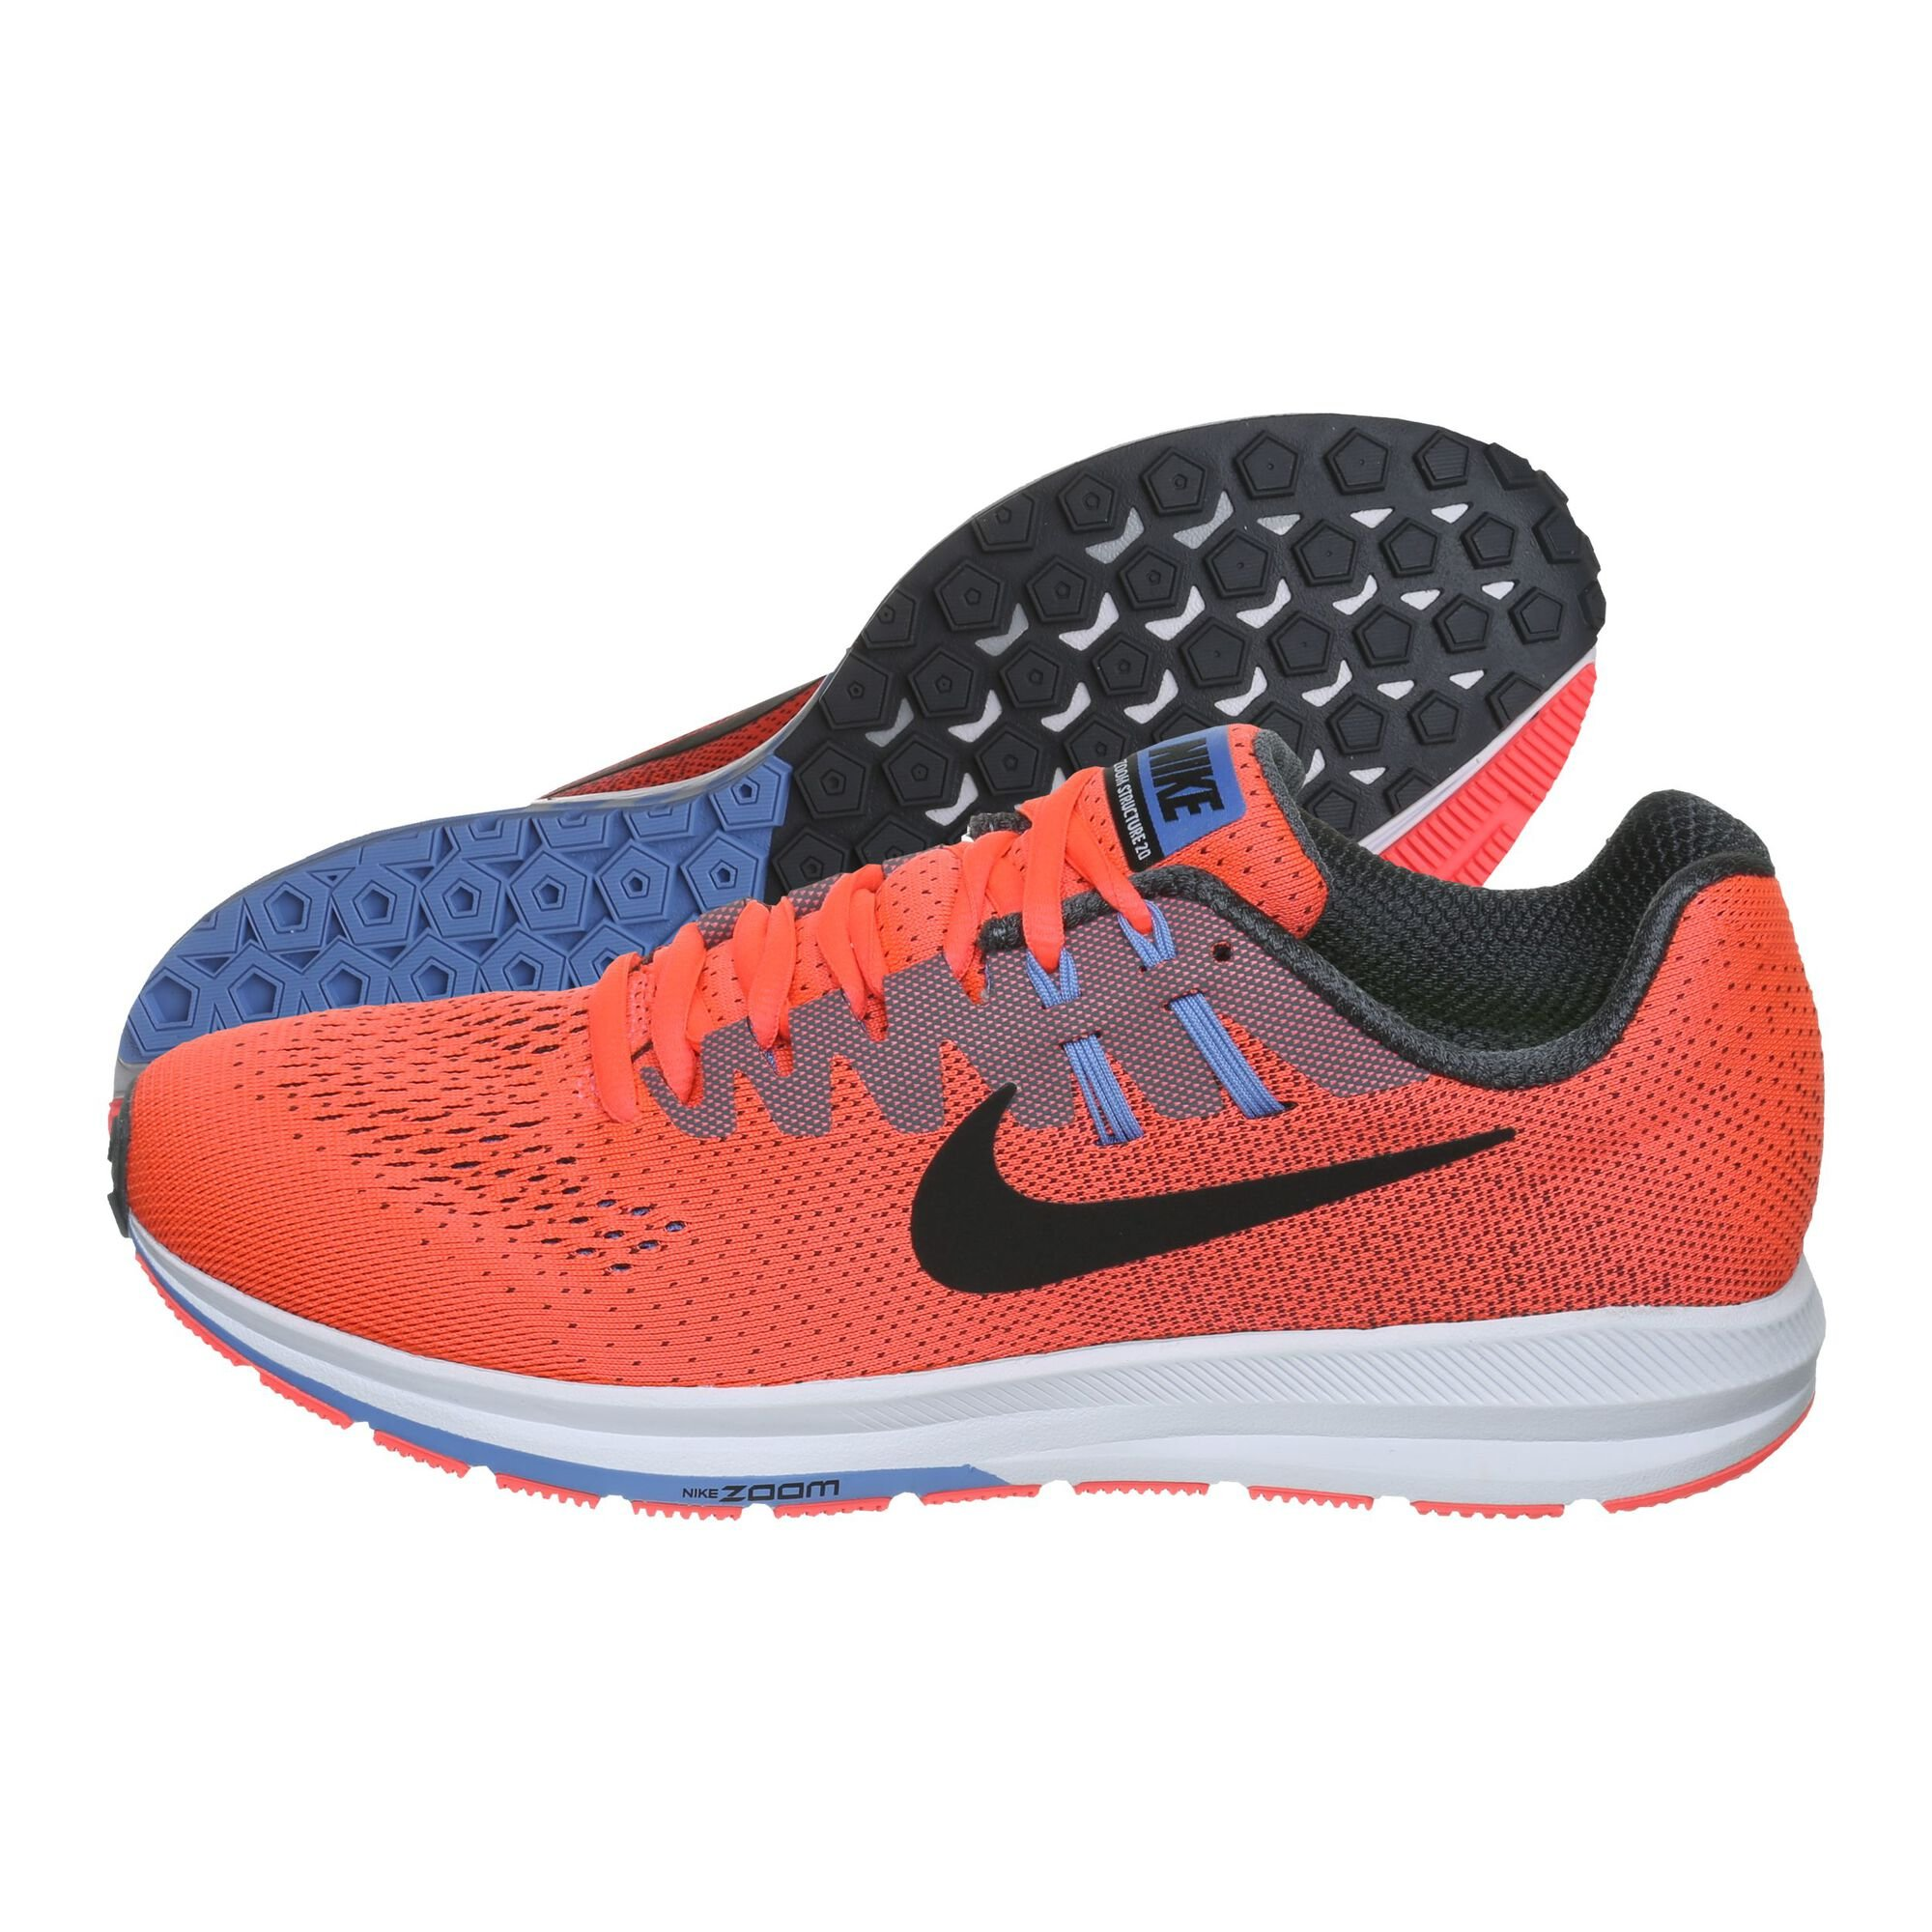 size 40 67823 efa0b buy Nike Air Zoom Structure 20 Stability Running Shoe Women ...